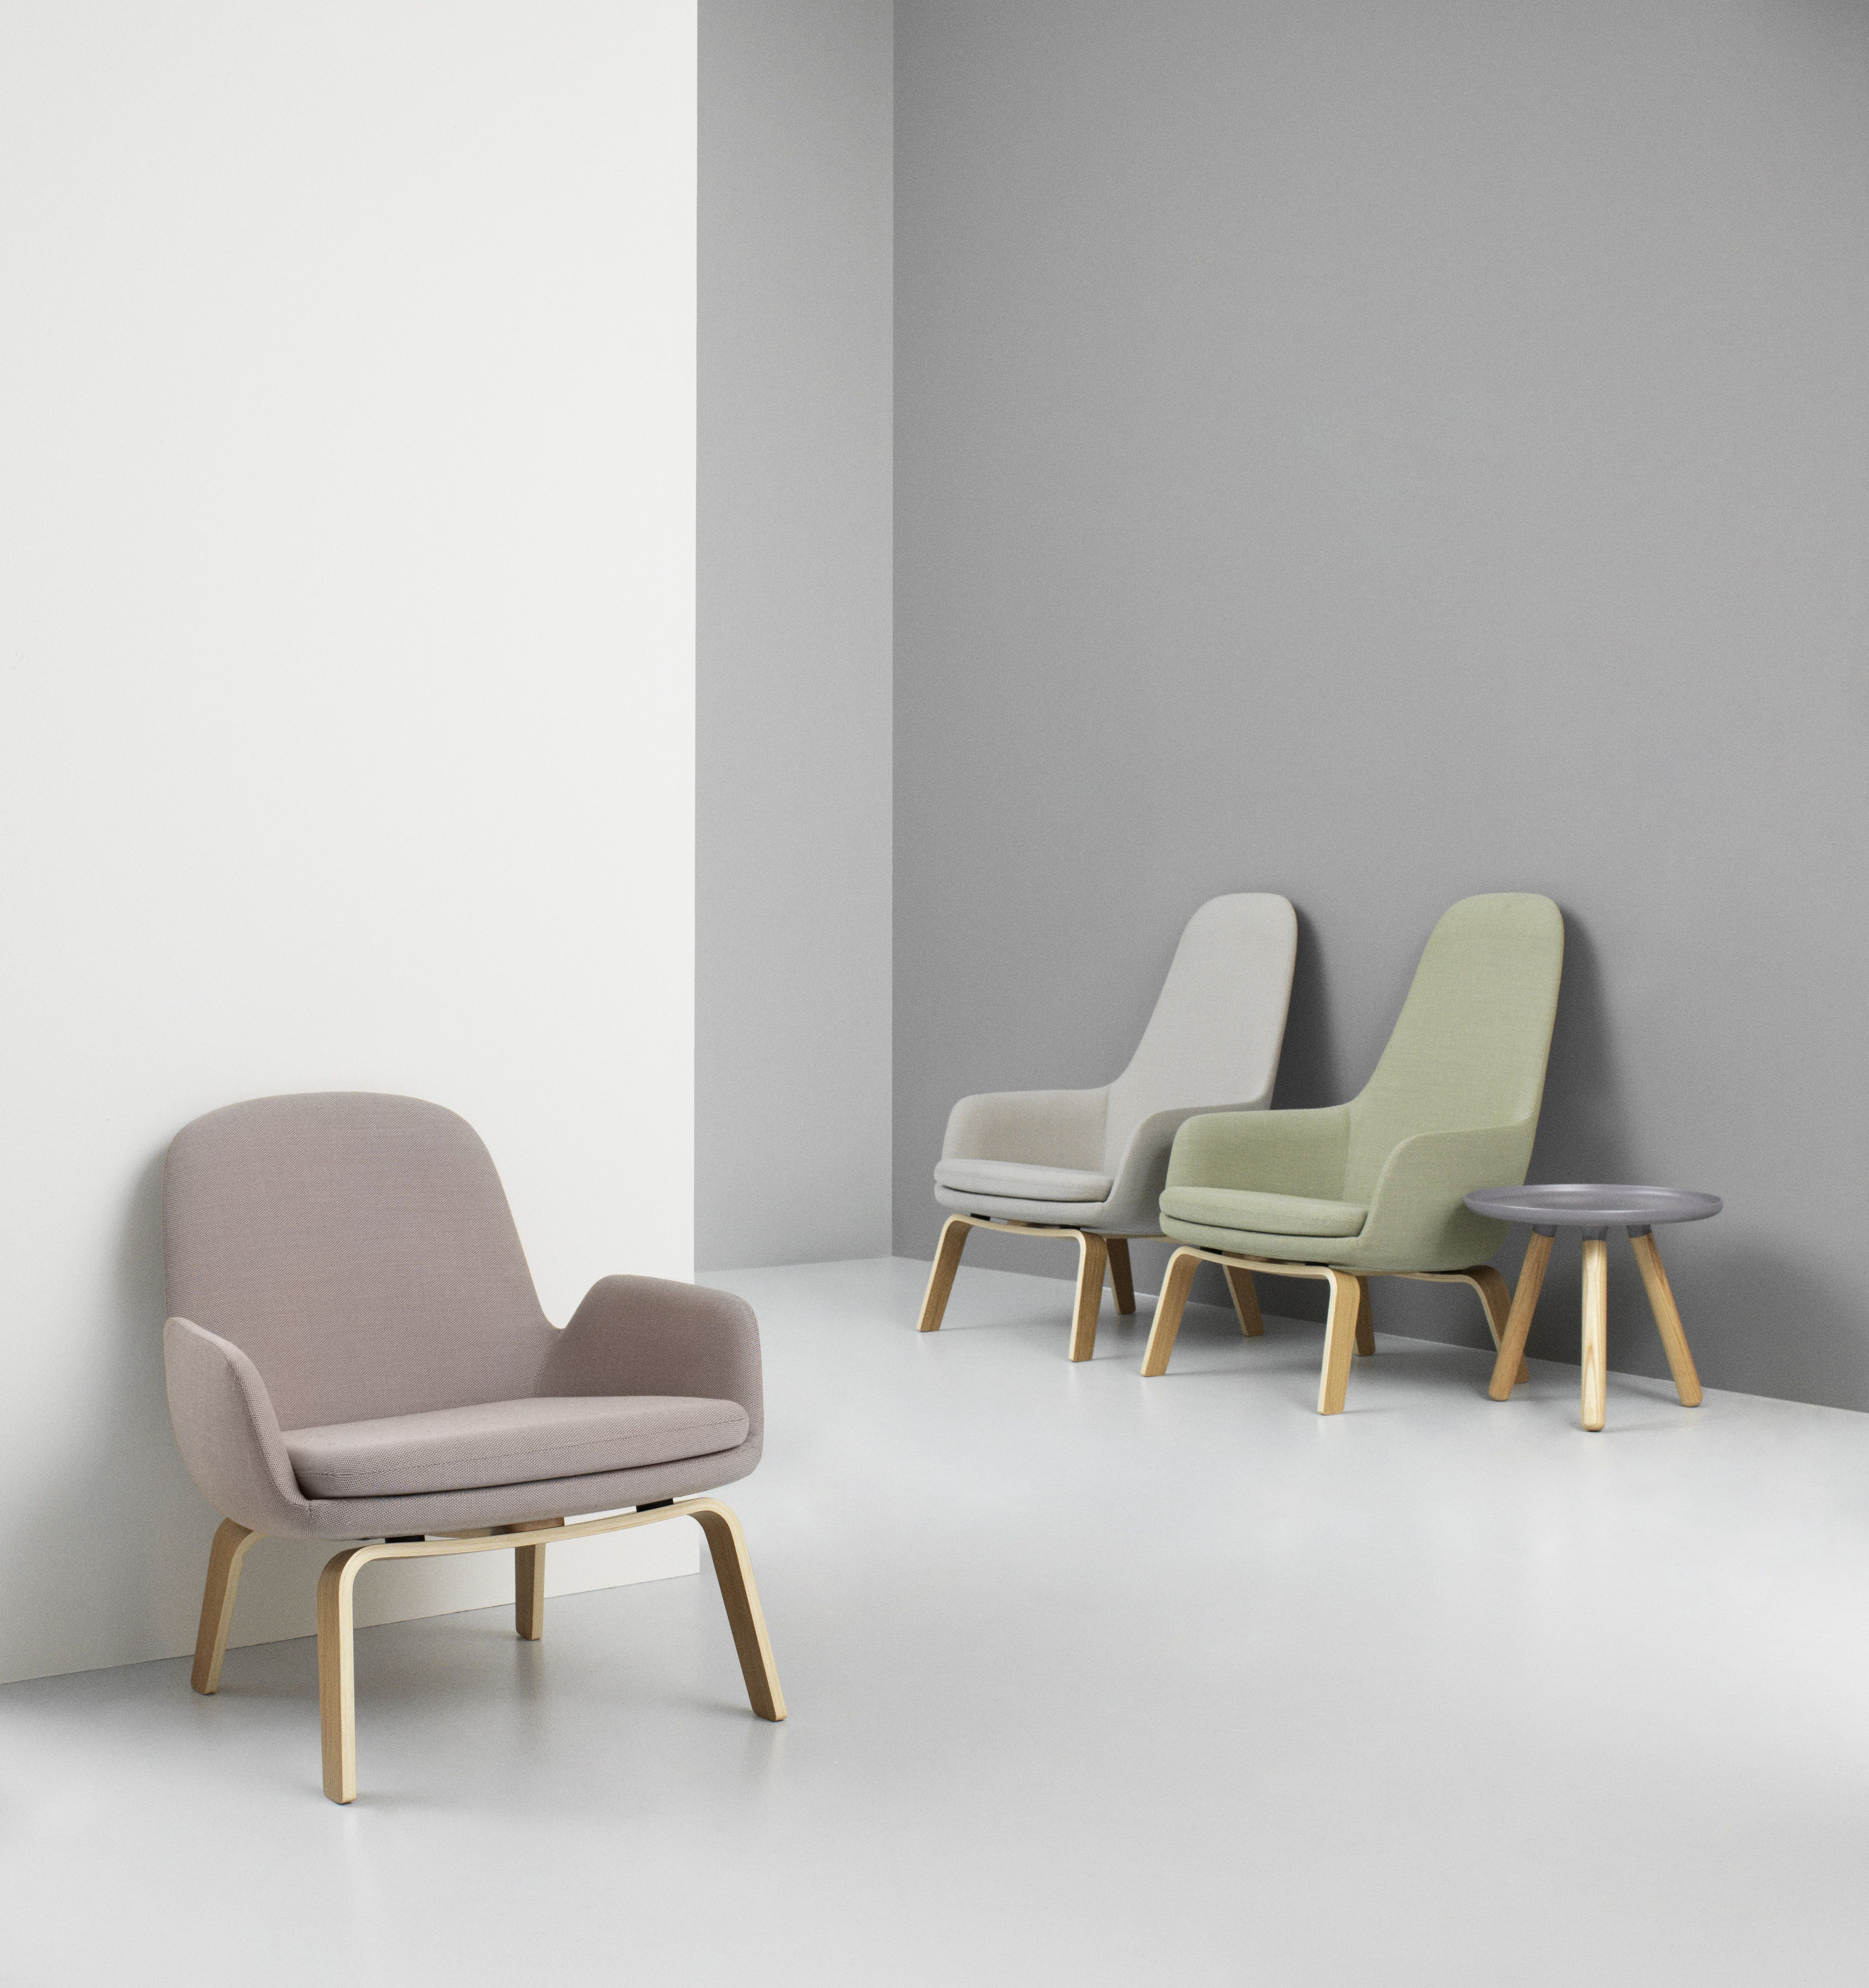 Era lounge chairs in dusted pale colors